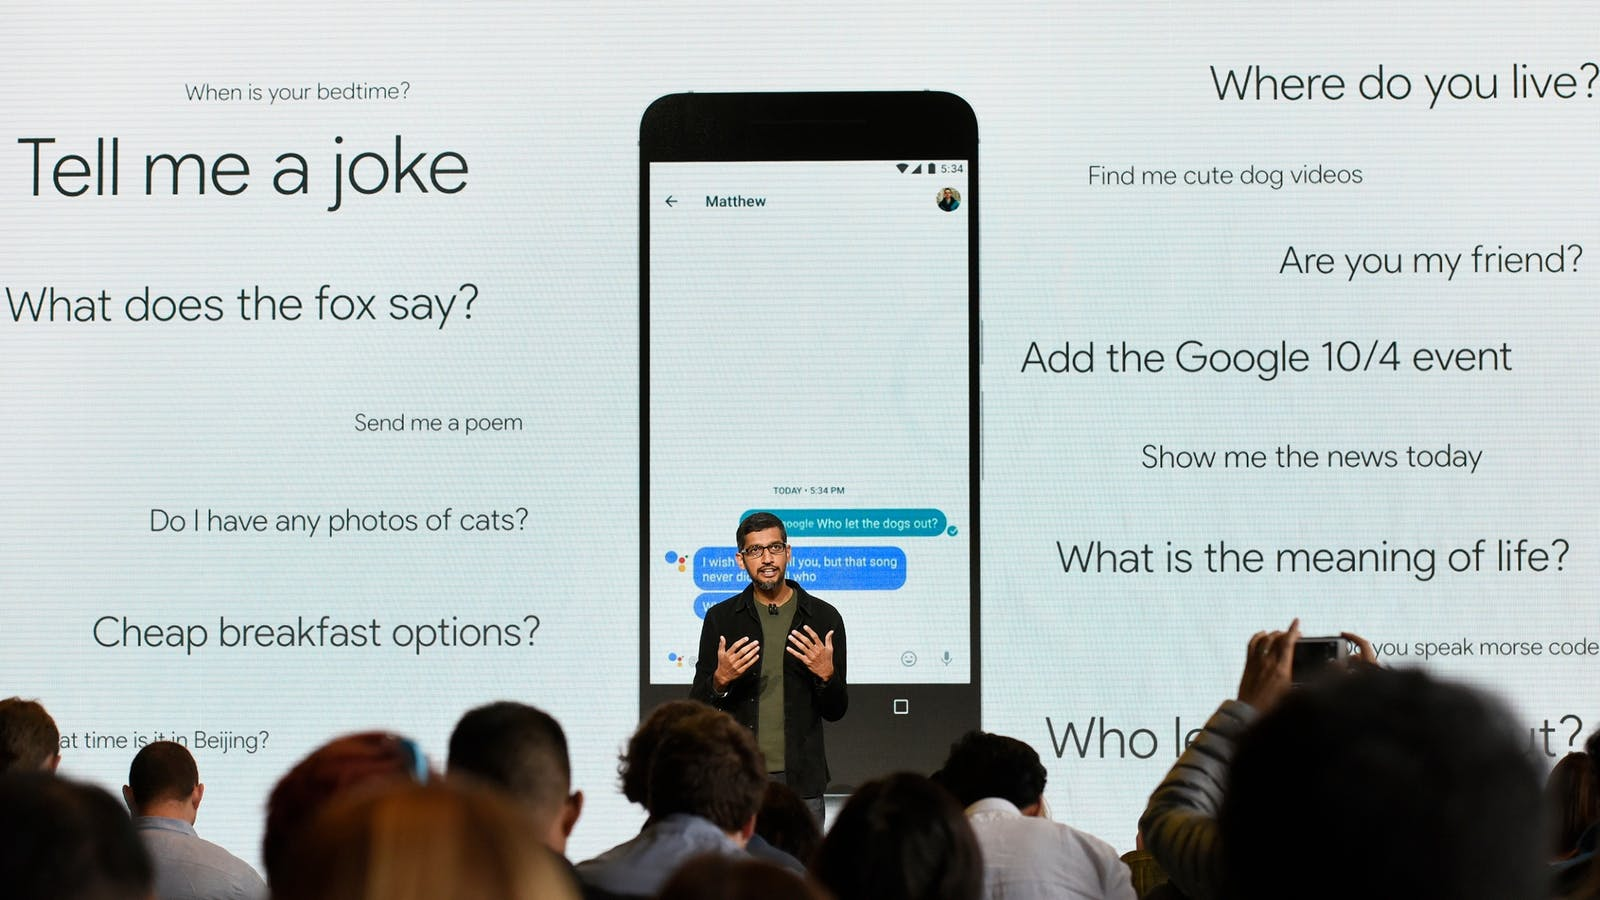 Google CEO Sundar Pichai discussing Google's new Pixel smartphone and its virtual assistant at Tuesday's launch event. Photo by Bloomberg.